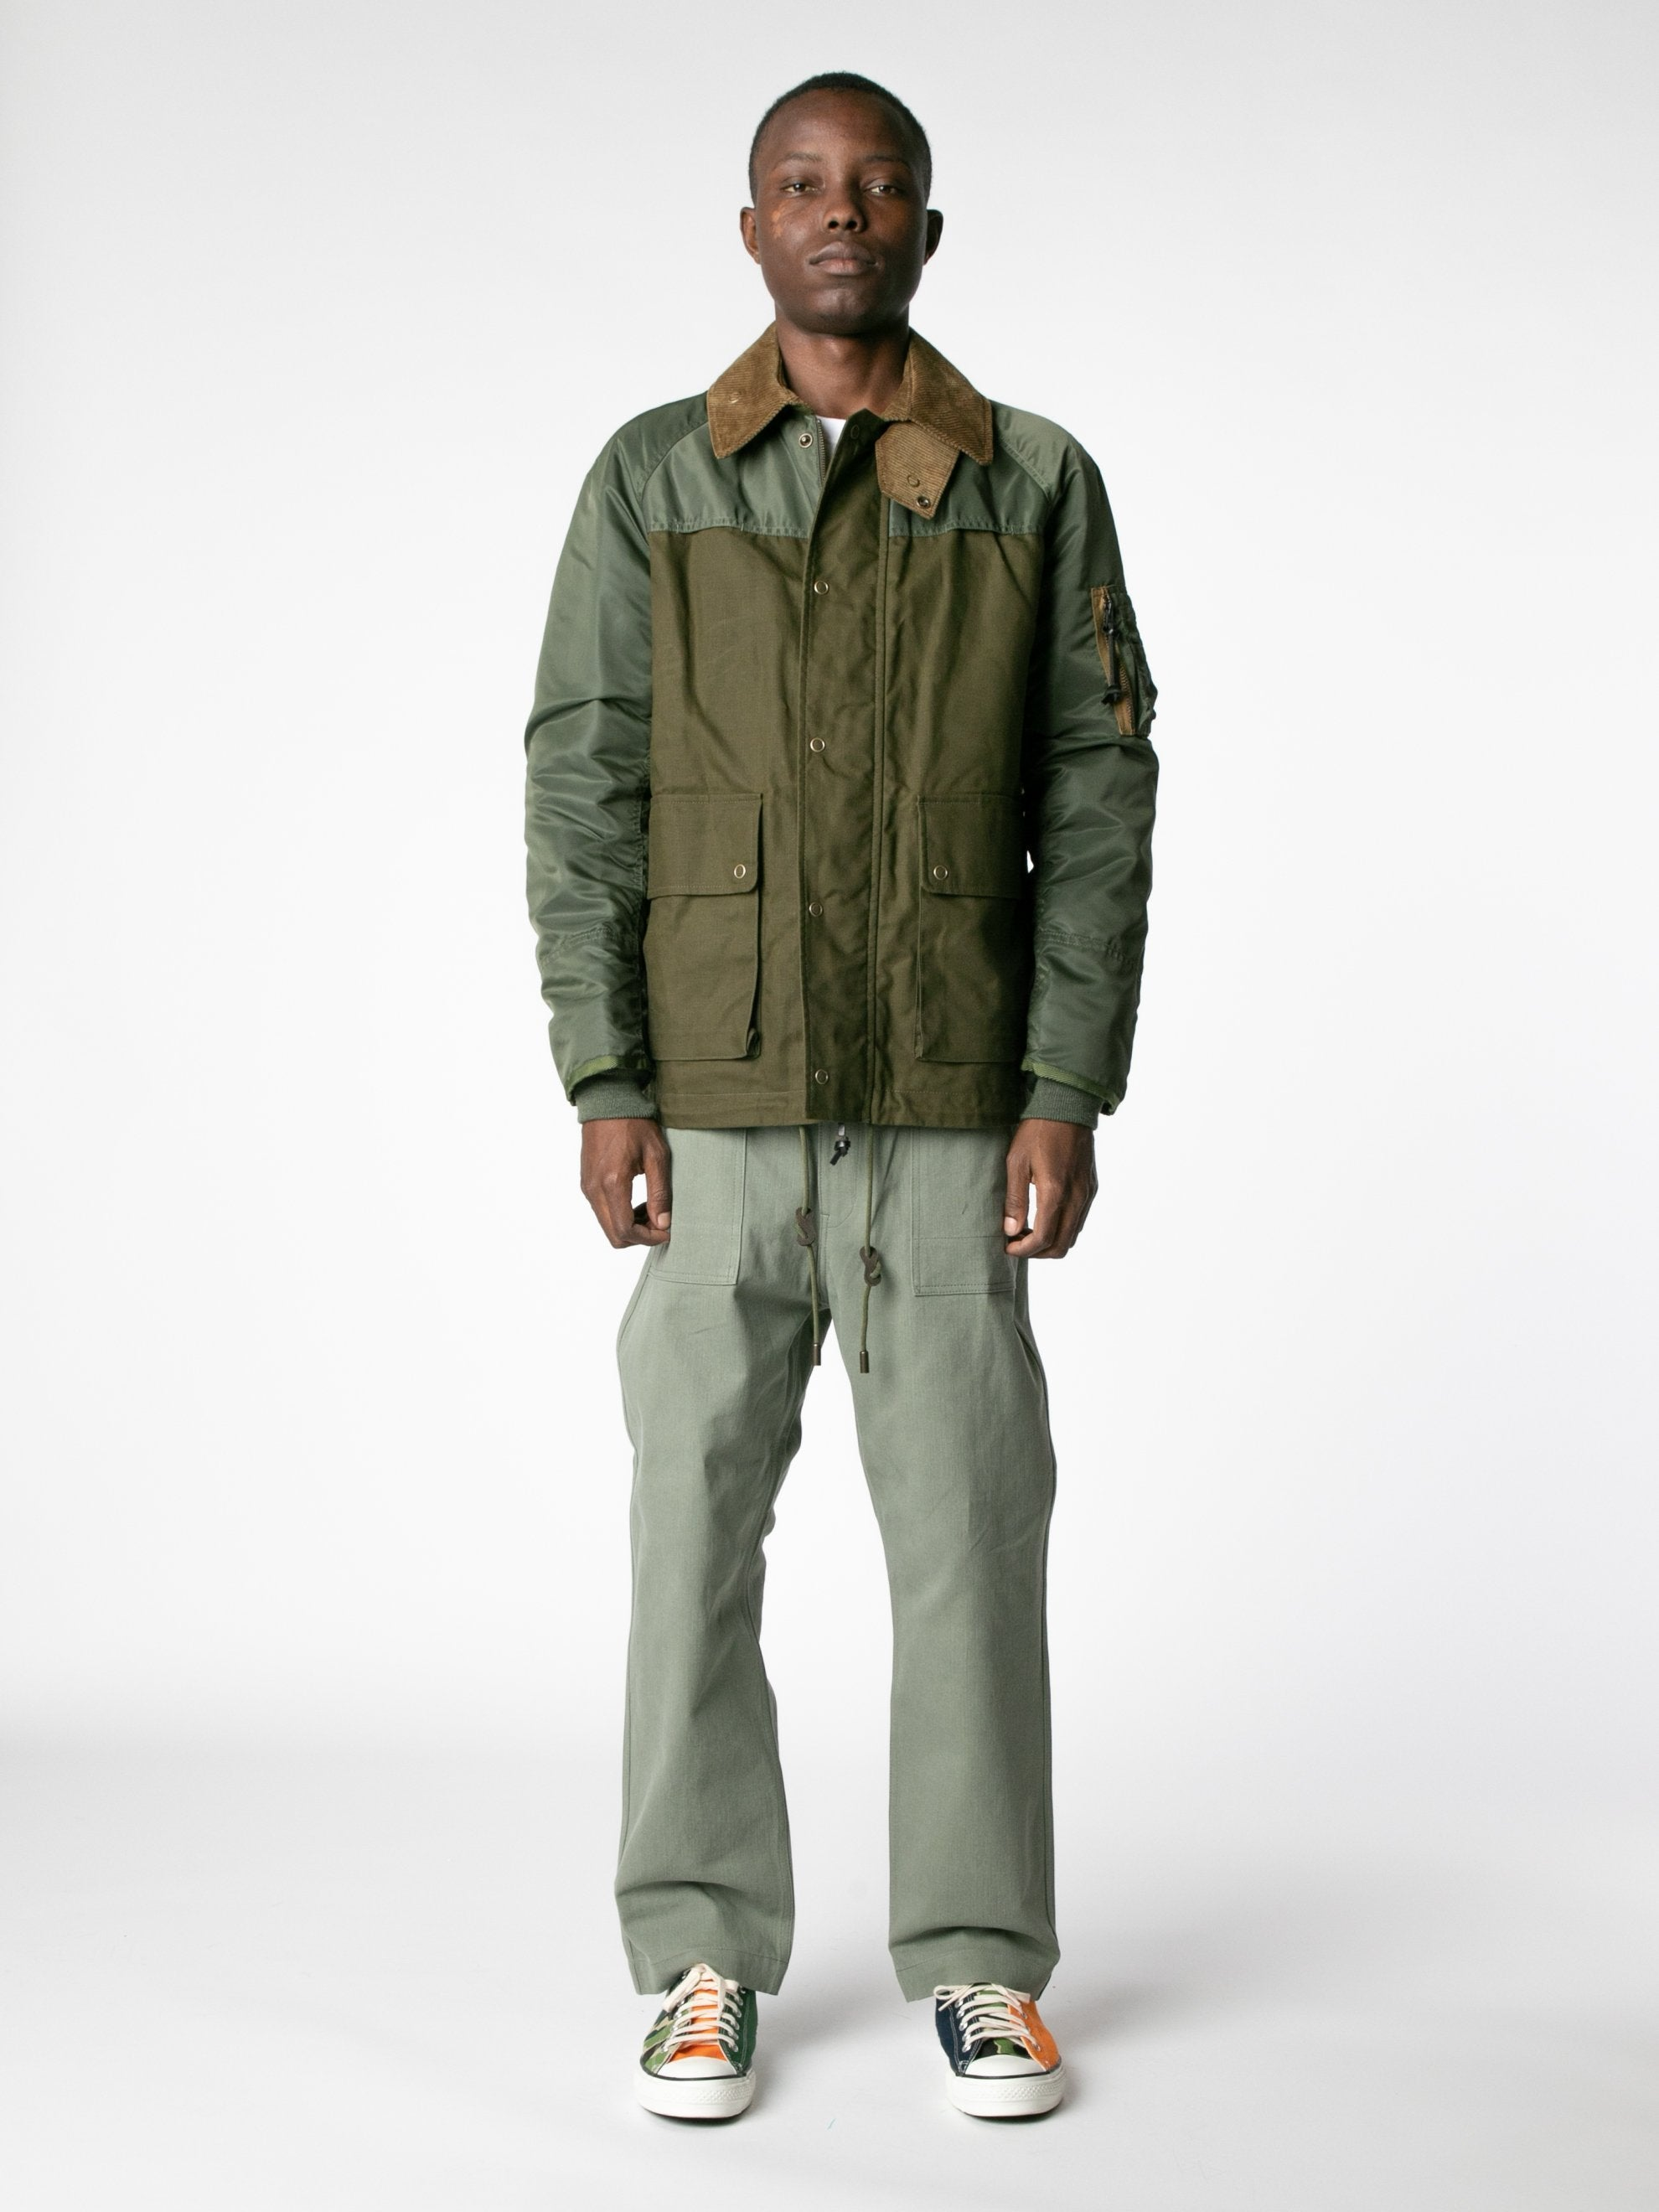 Brown / Olive Hybrid MA-1 Field Coat 3